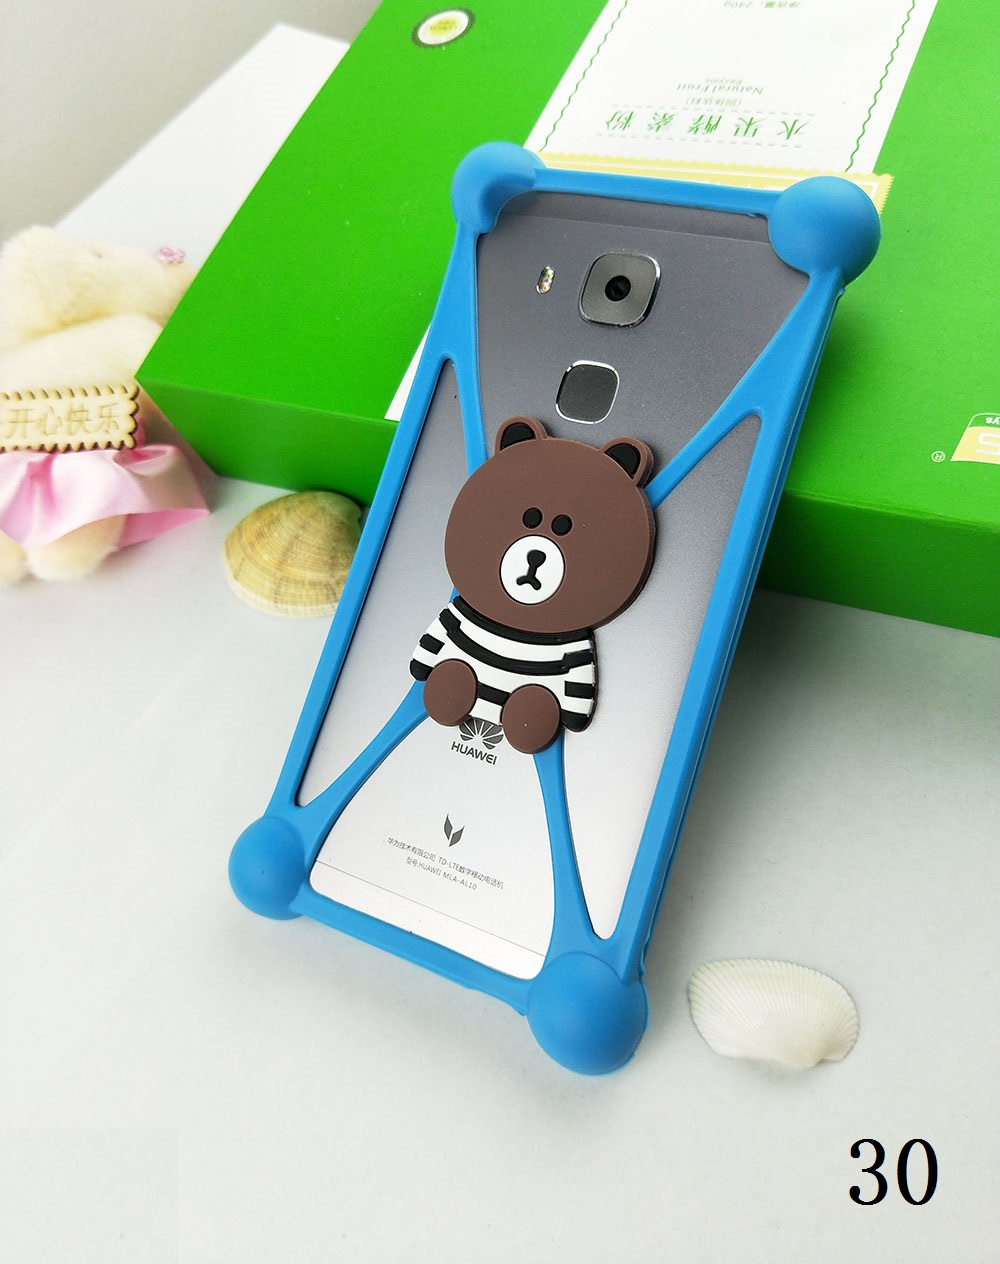 Case Housing Cover shell for <font><b>Sony</b></font> <font><b>Xperia</b></font> <font><b>E3</b></font> <font><b>D2202</b></font> C3 dual Z1S Z2 (D6502)T3 C3 C FOR <font><b>Sony</b></font> <font><b>Xperia</b></font> ZL (C6502) image